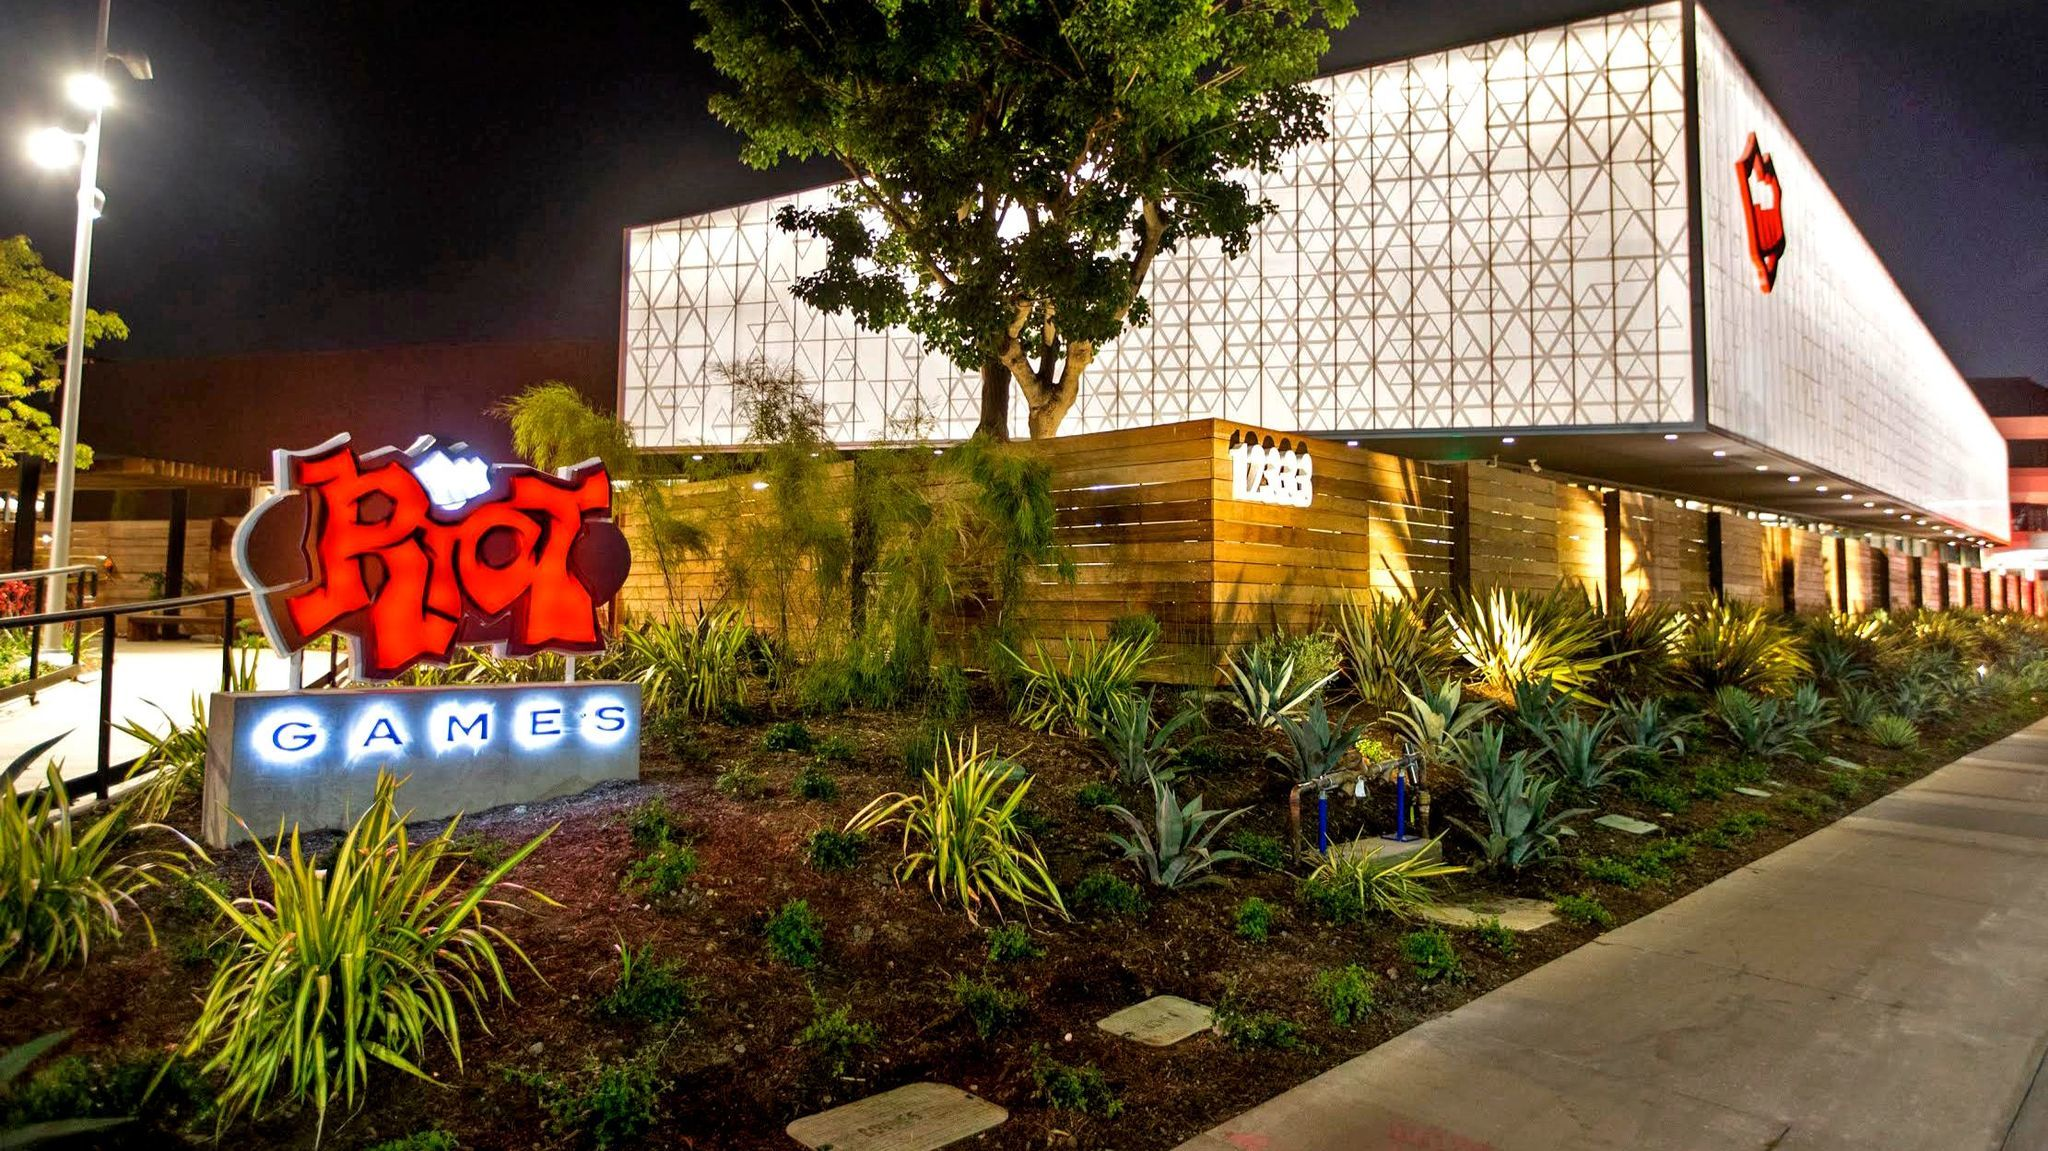 Riot Games' campus in West Los Angeles.